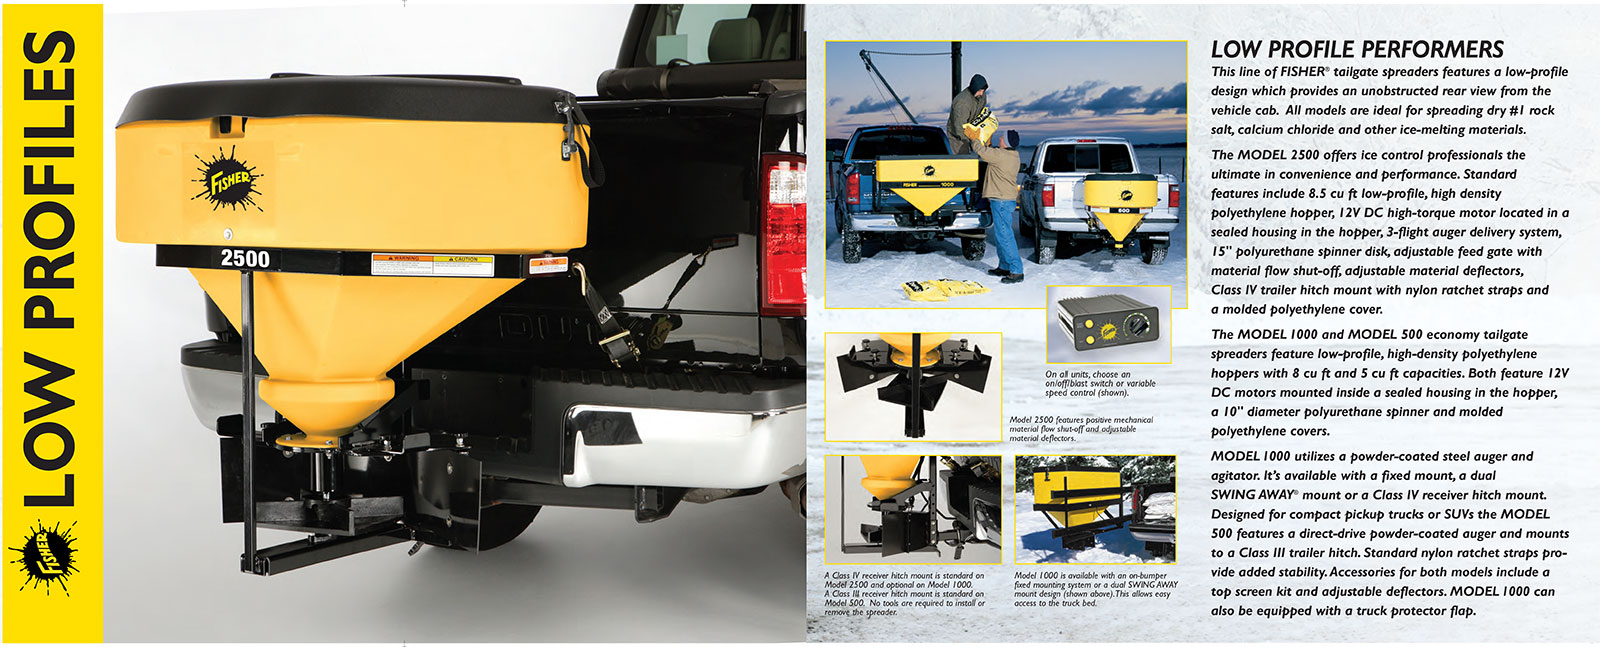 FISHER LOW PROFILE TAILGATE SALT SPREADER INFORMATION